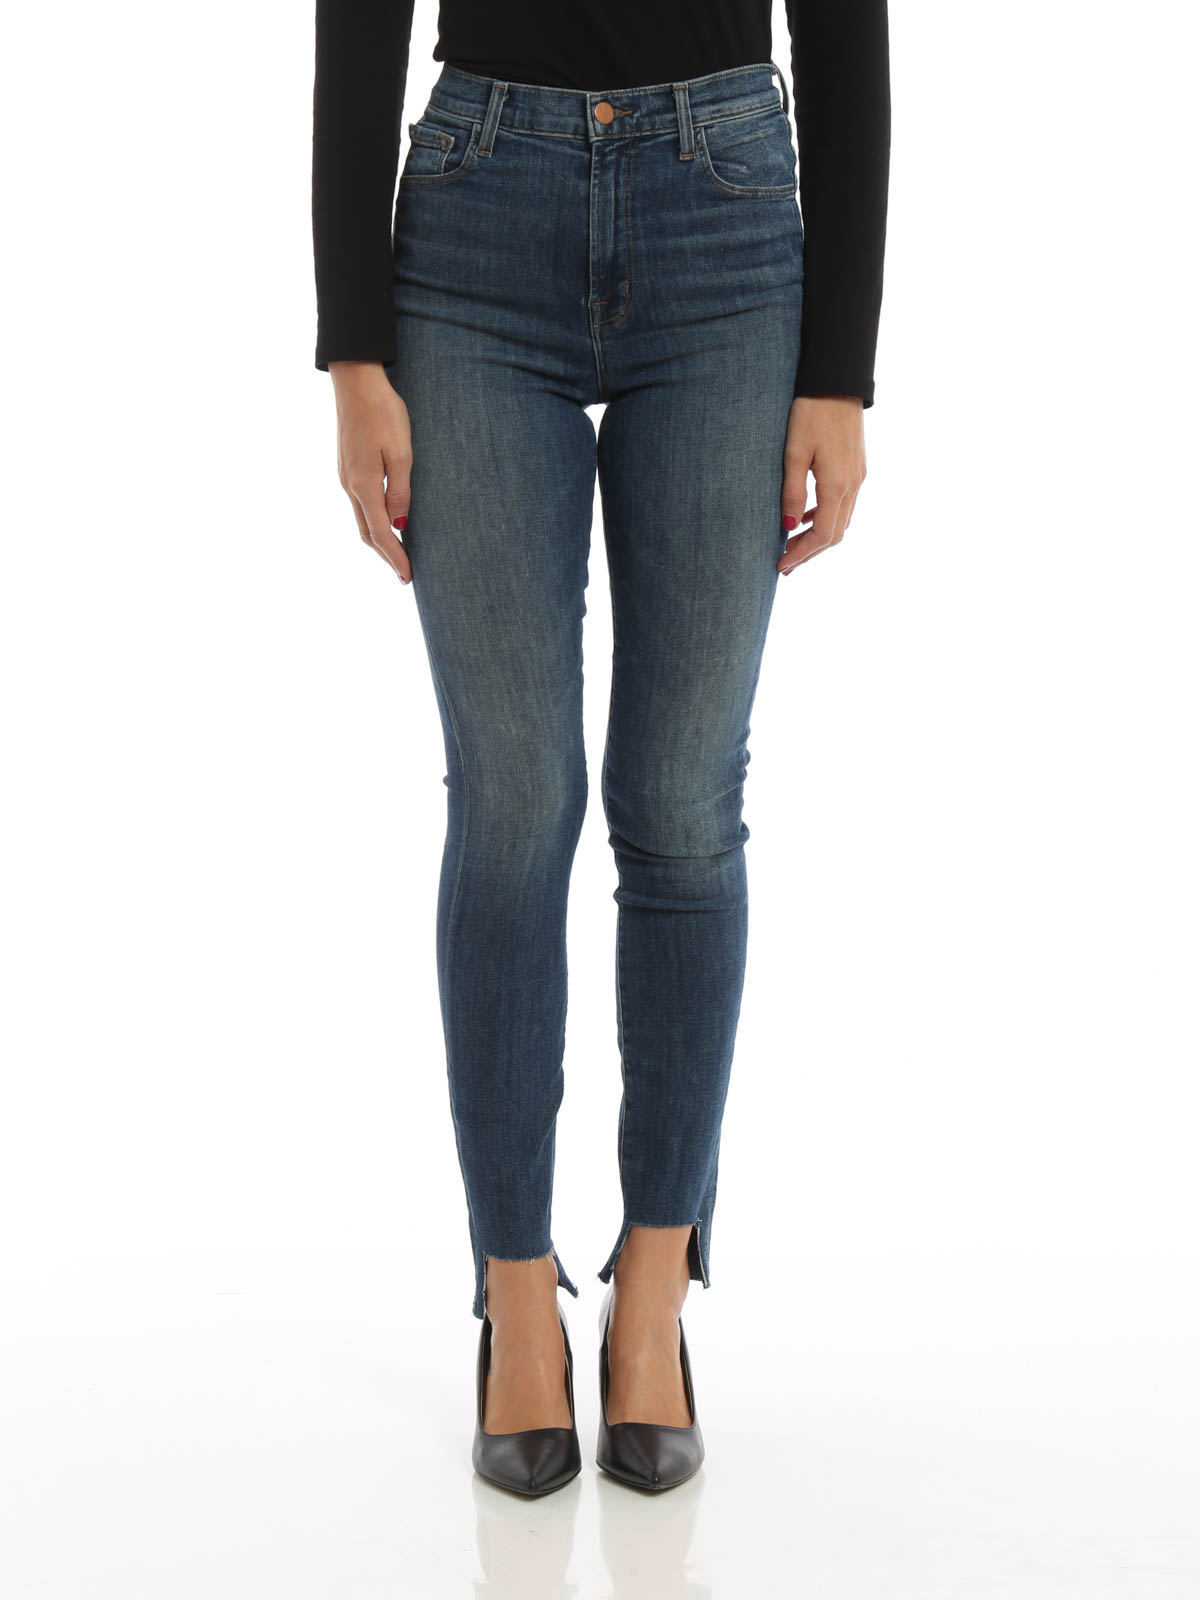 High rise jeans brands